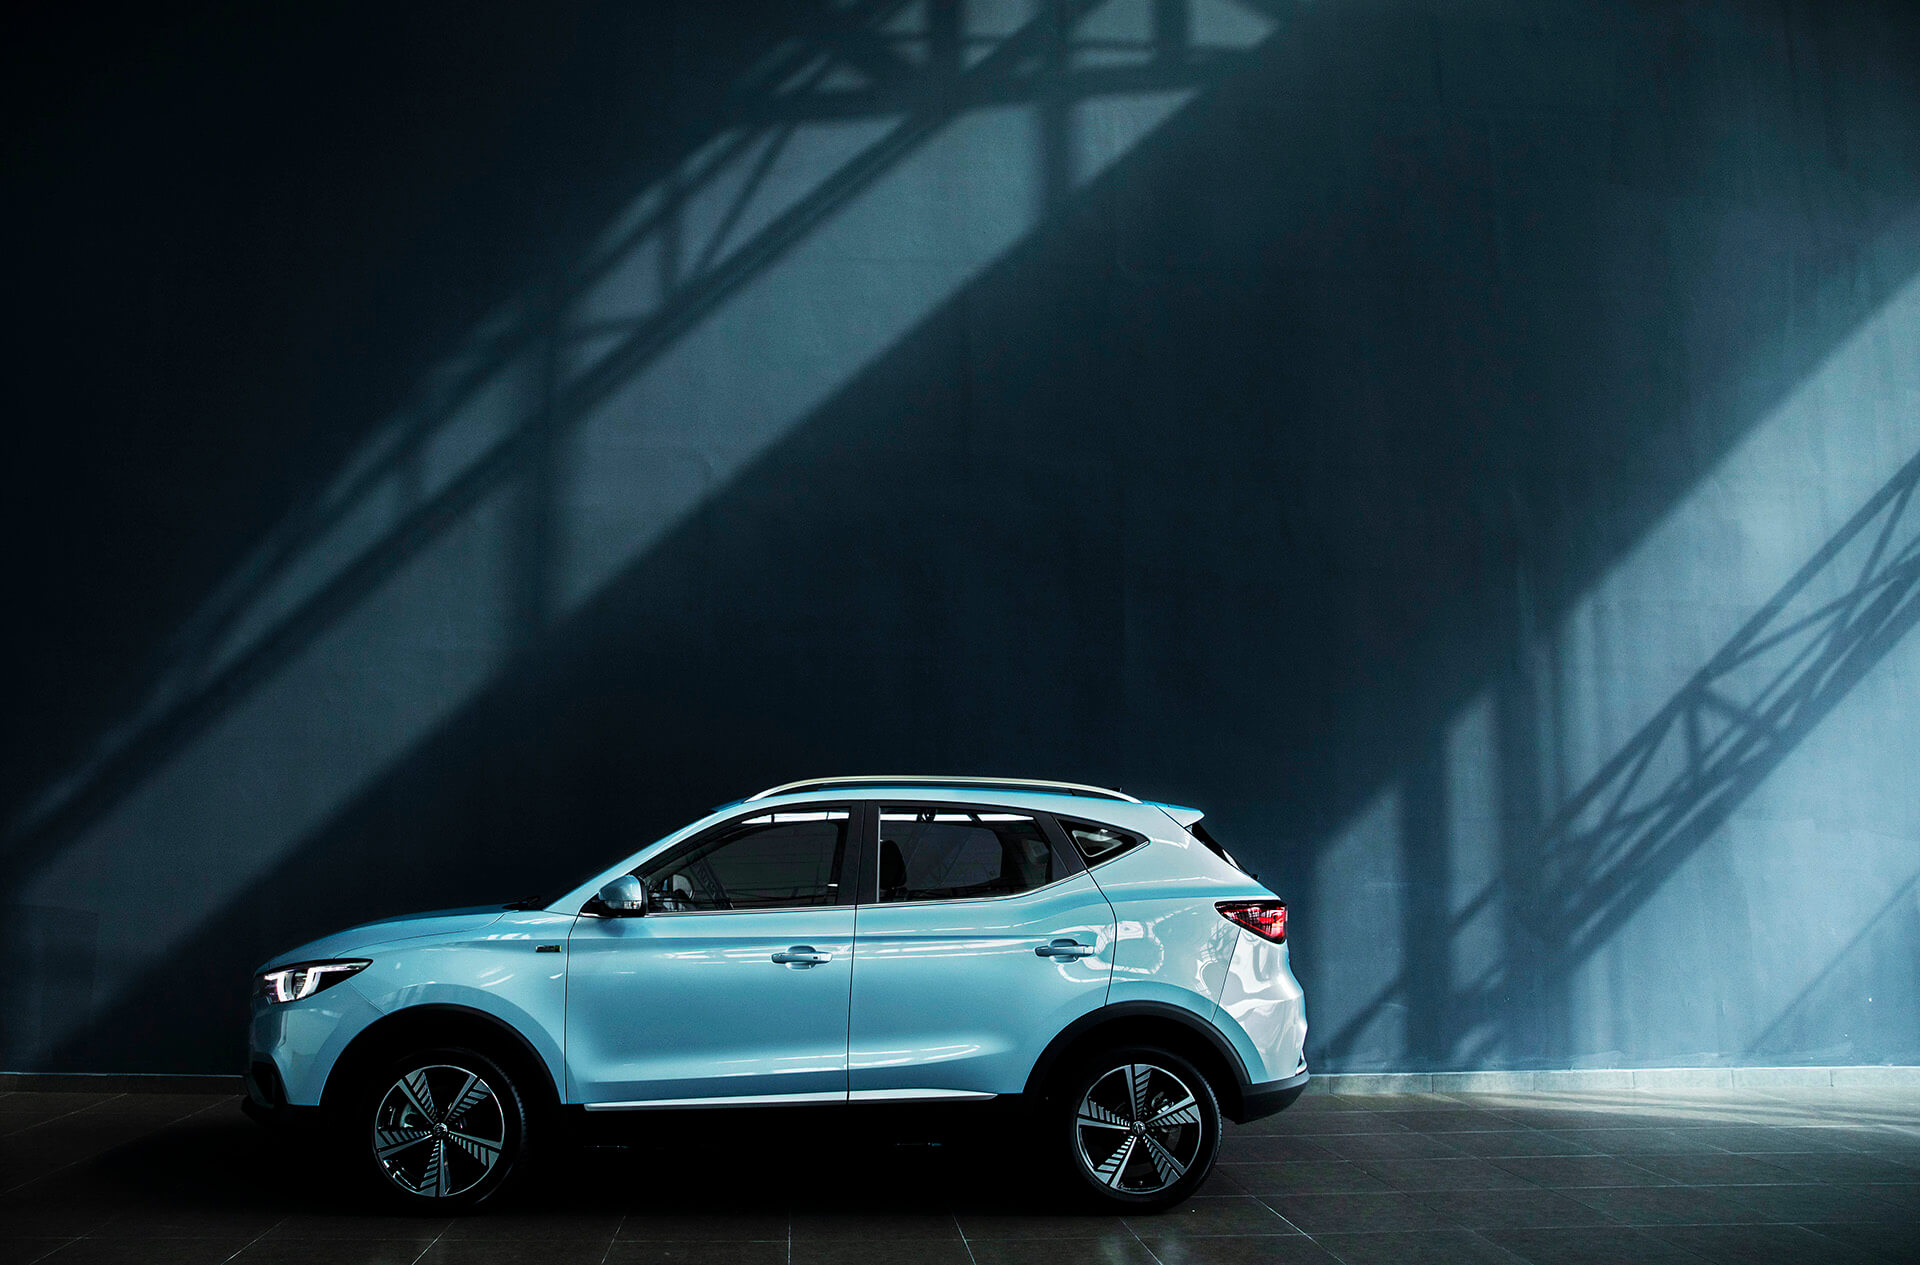 Presale pricing announced for the MG ZS EV